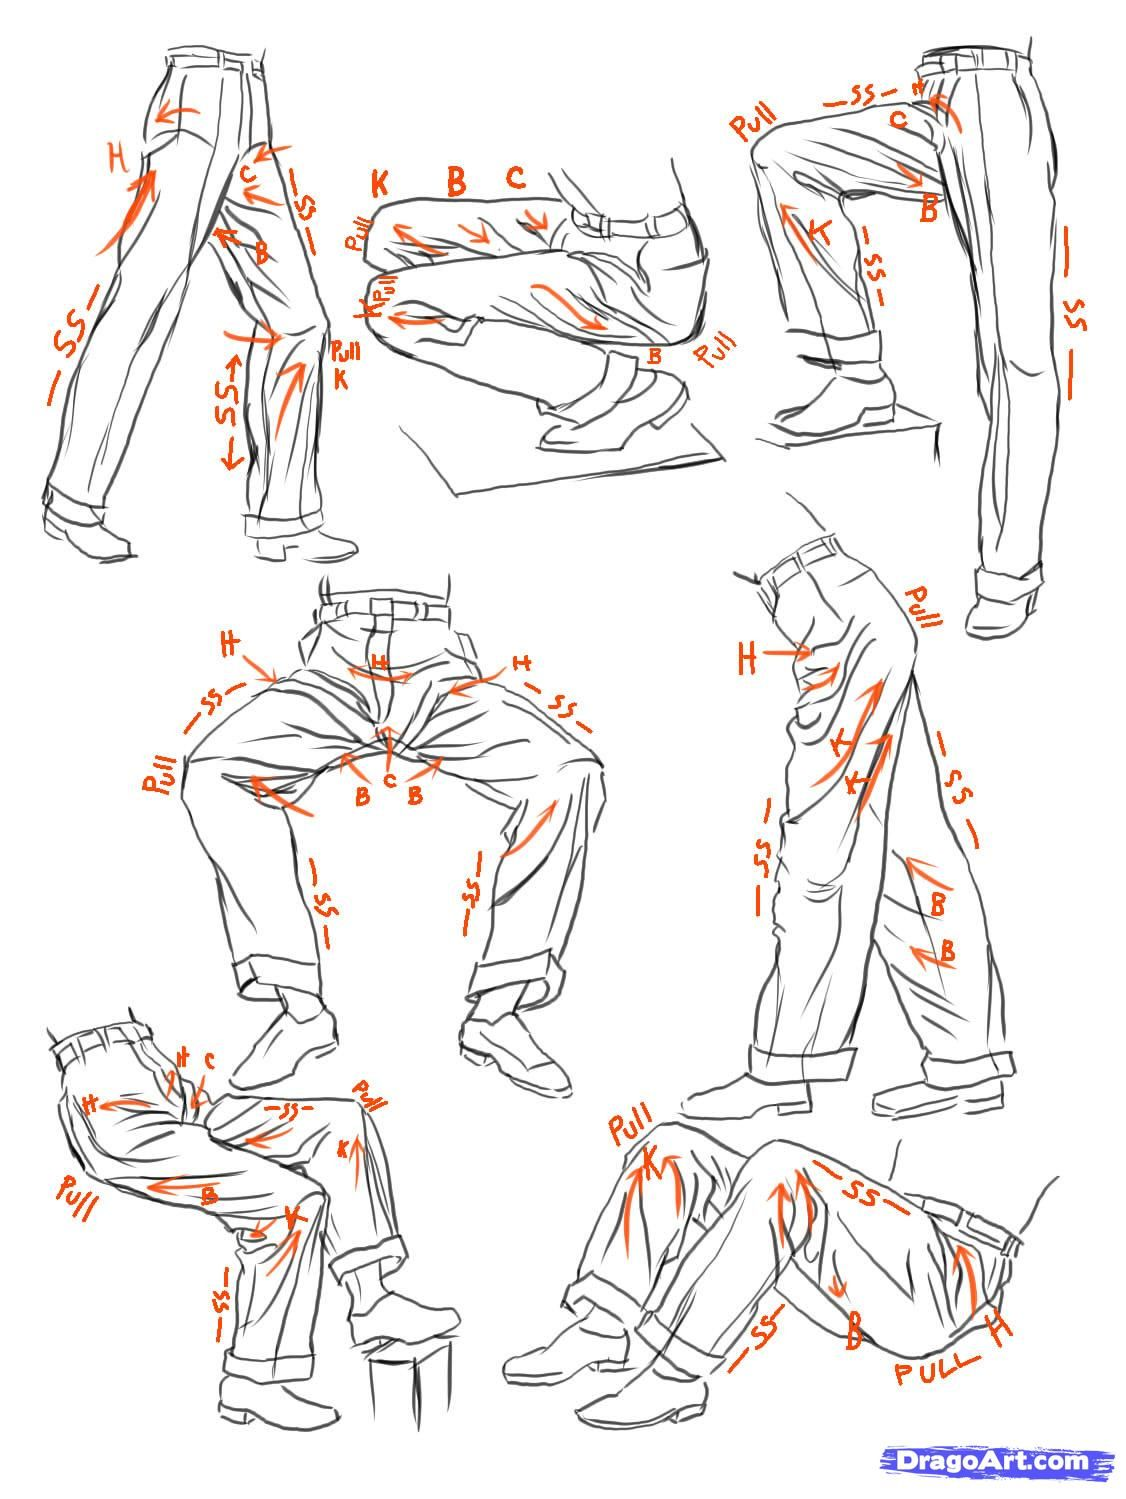 How To Sketch Anime Clothes, Step By Step, Anime People, Anime, Draw